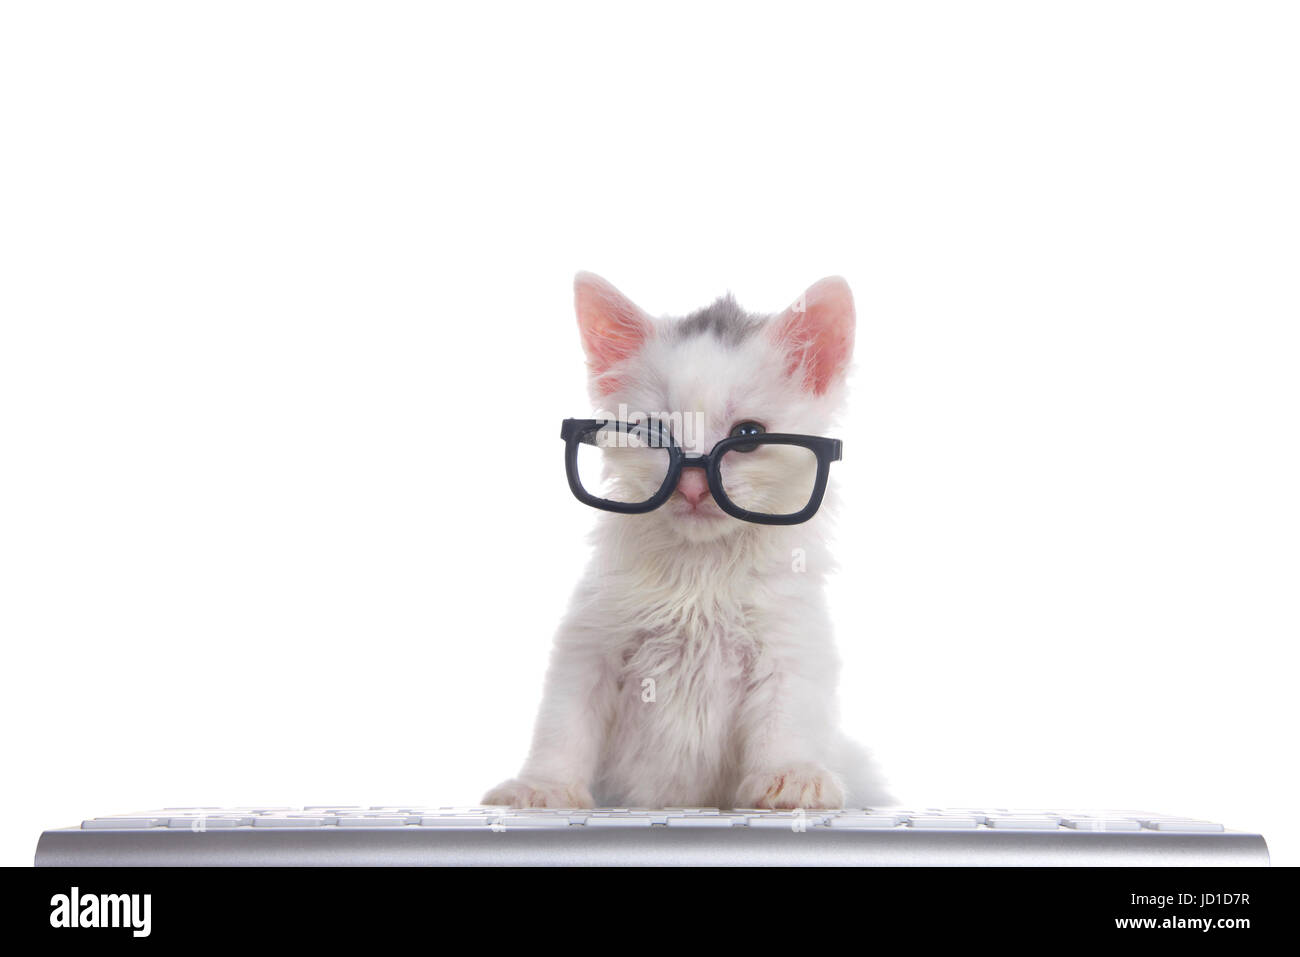 One cute adorable fluffy white kitten wearing black geeky glasses looking over the glasses slightly to viewers left, - Stock Image